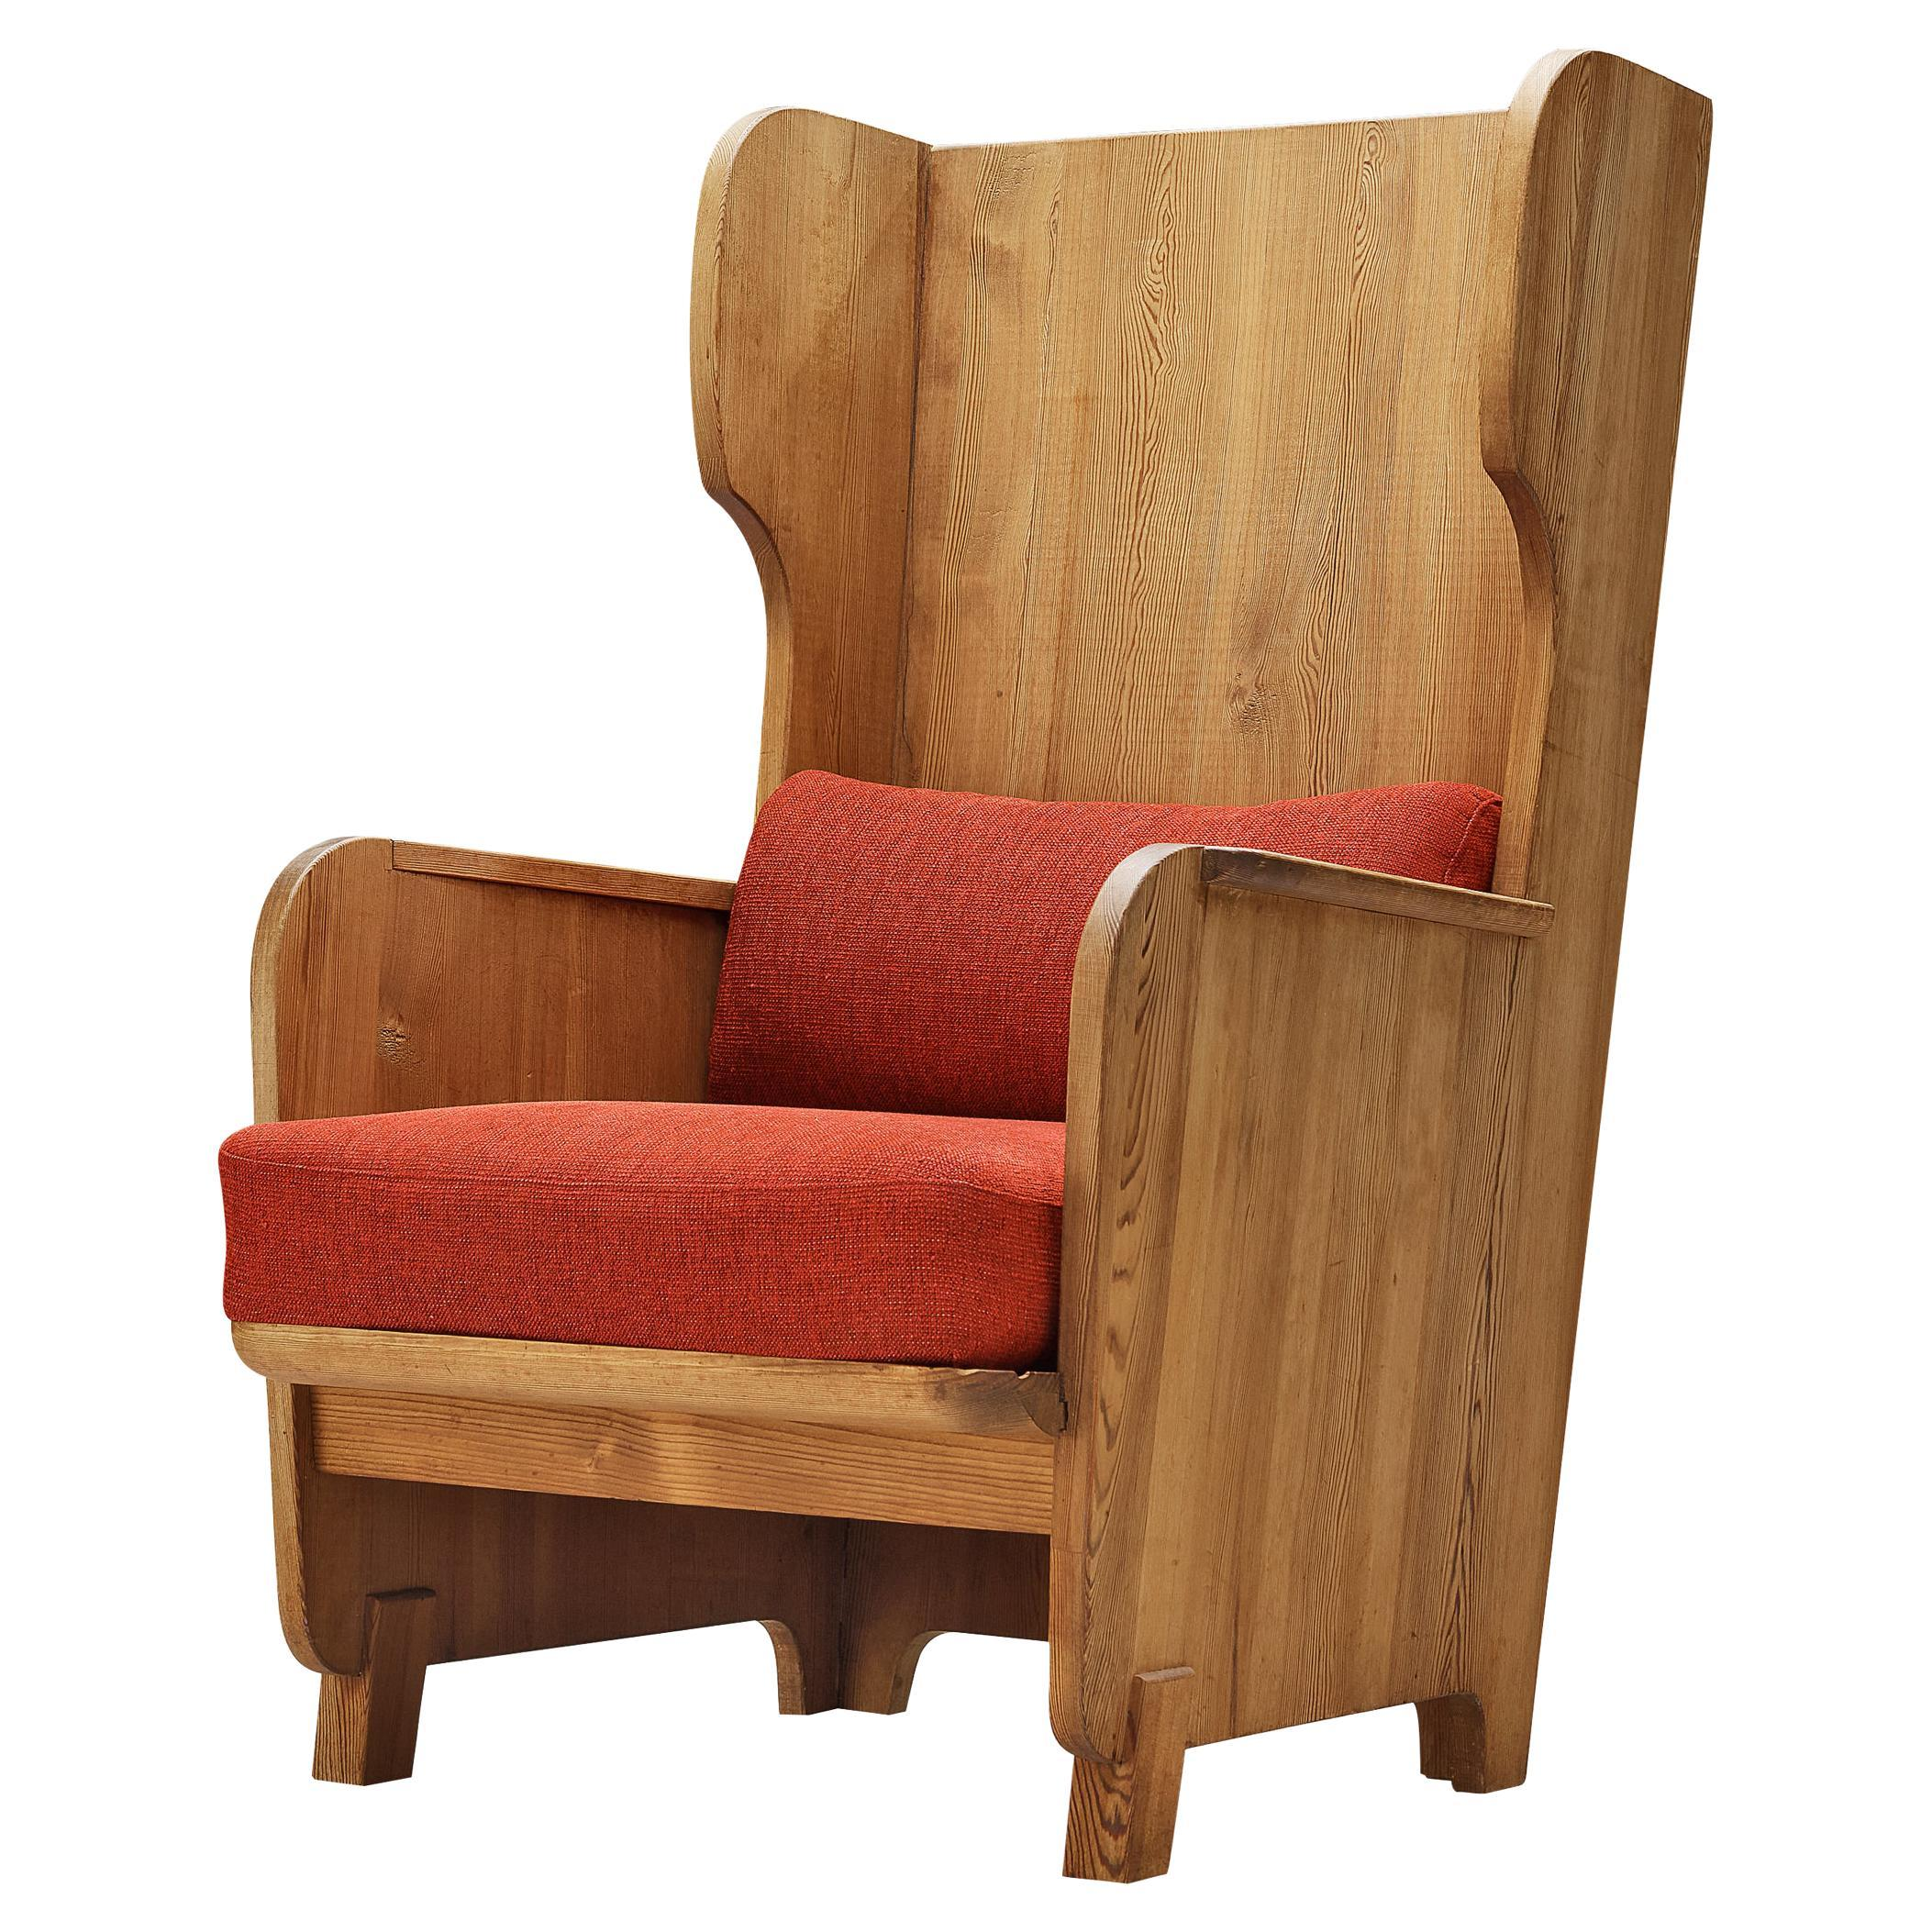 Axel Einar Hjorth 'Lovö' Lounge Chair in Solid Pine with Red Cushions